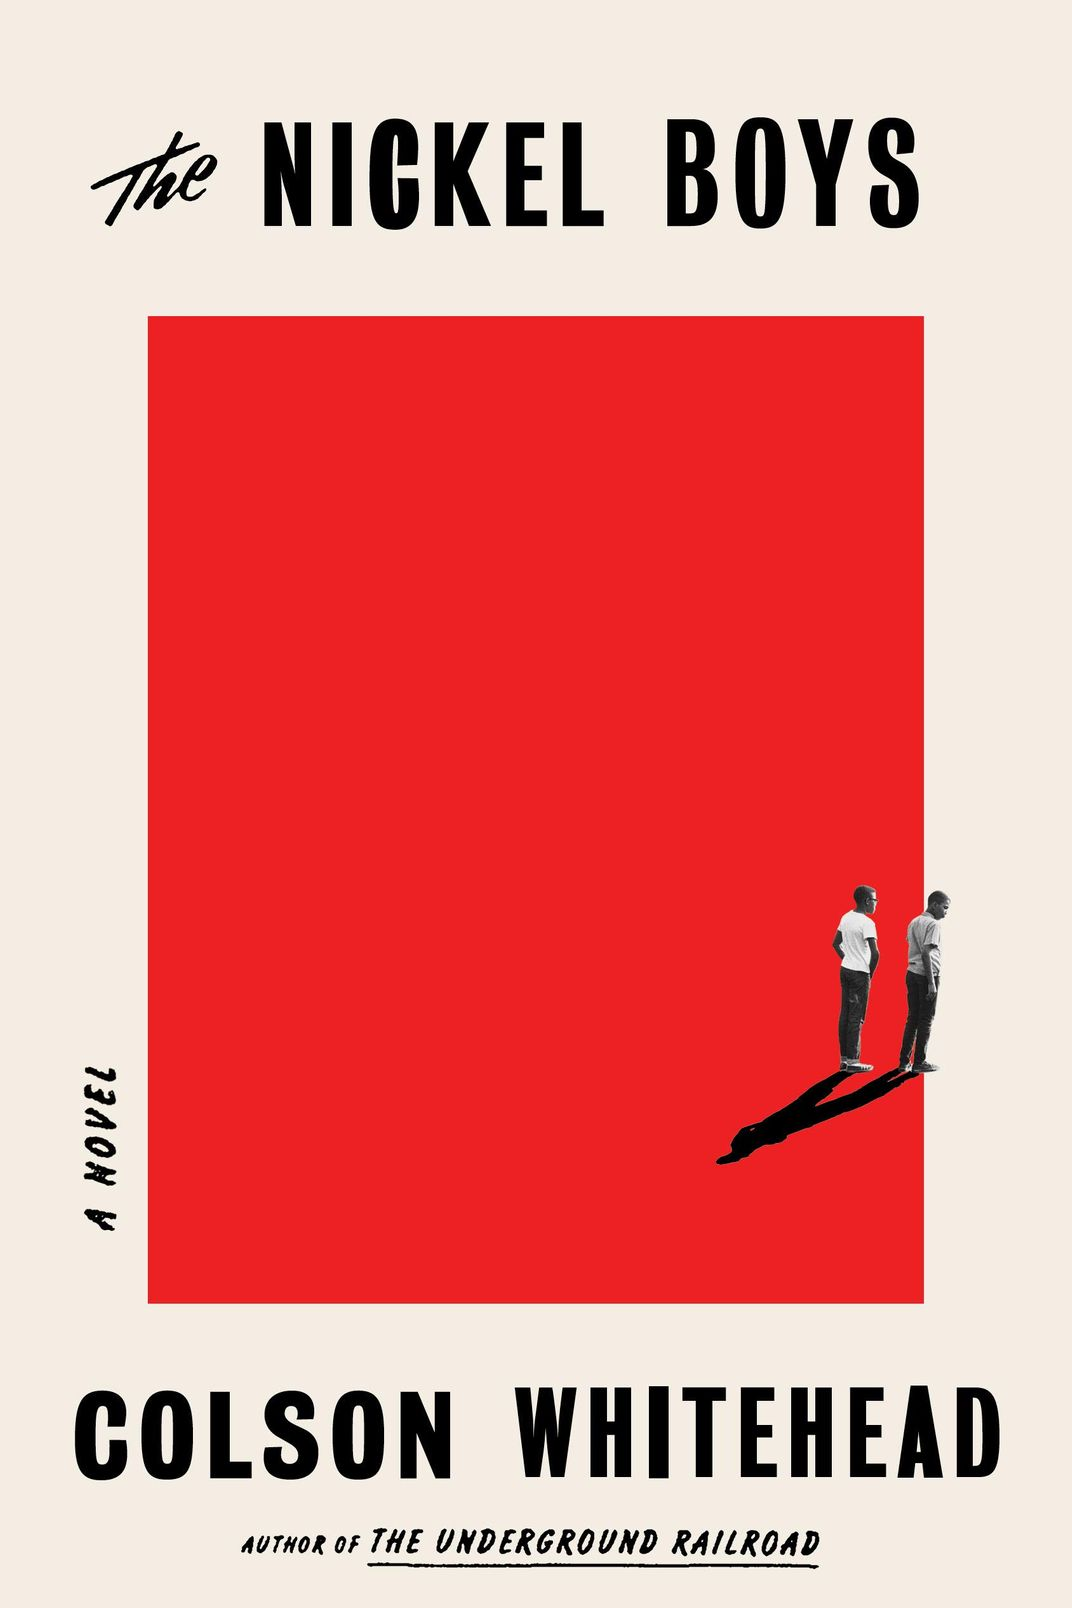 The Nickel Boys, by Colson Whitehead (Doubleday, July 16)